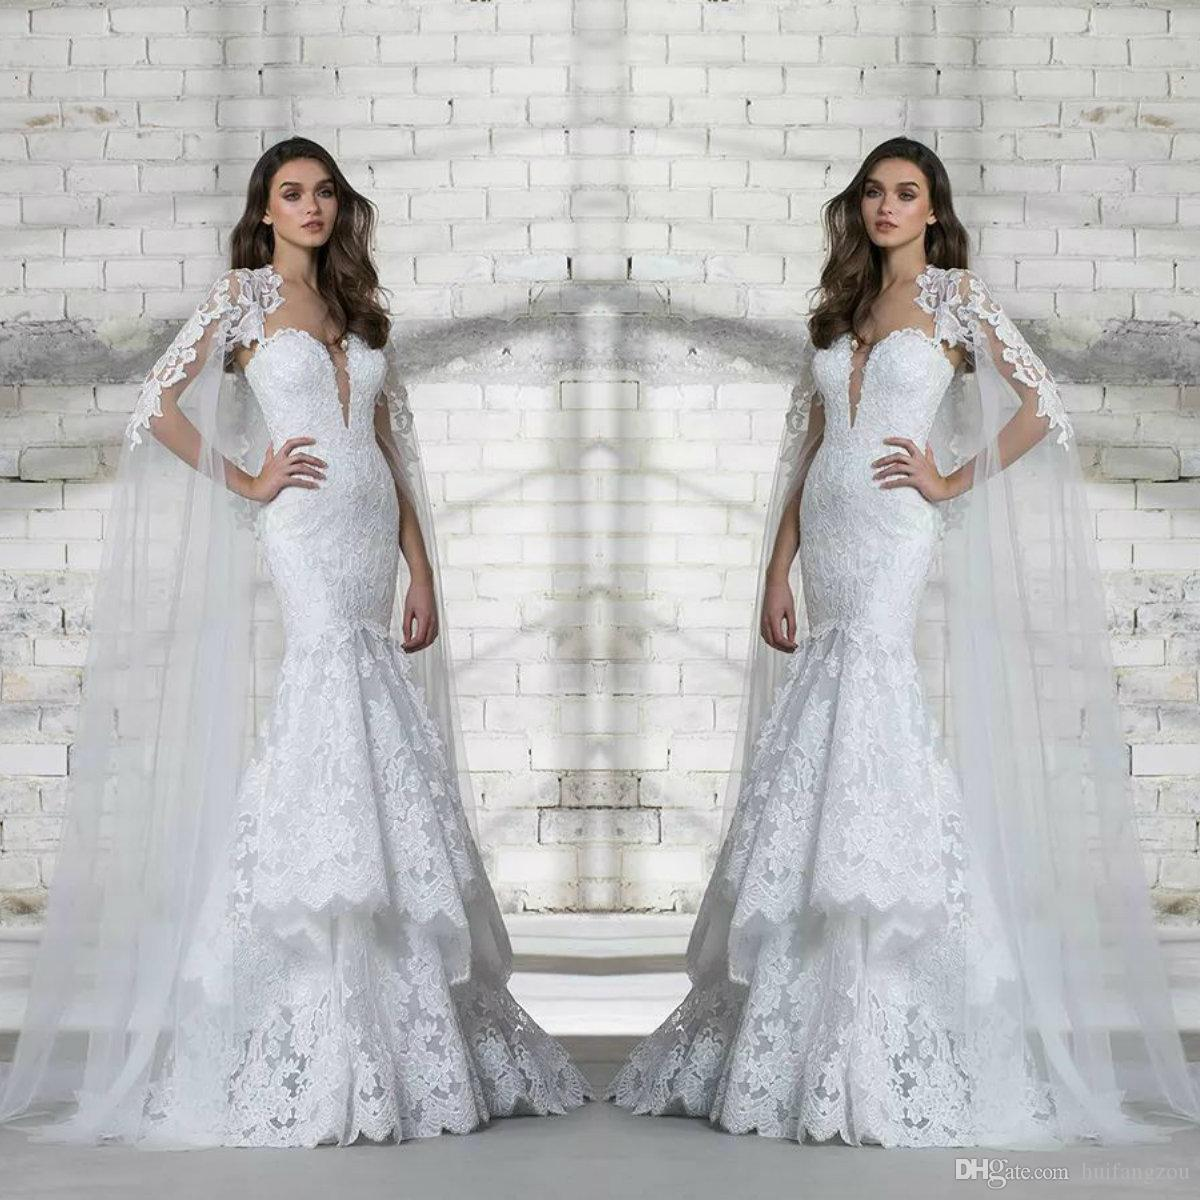 318e9e1b251 2018 Pnina Tornai Wedding Dress Full Lace Appliques Deep V Neck Tiered  Skirts Sequins Design Bridal Gowns With Long Wrap Corset Wedding Dresses  Couture ...